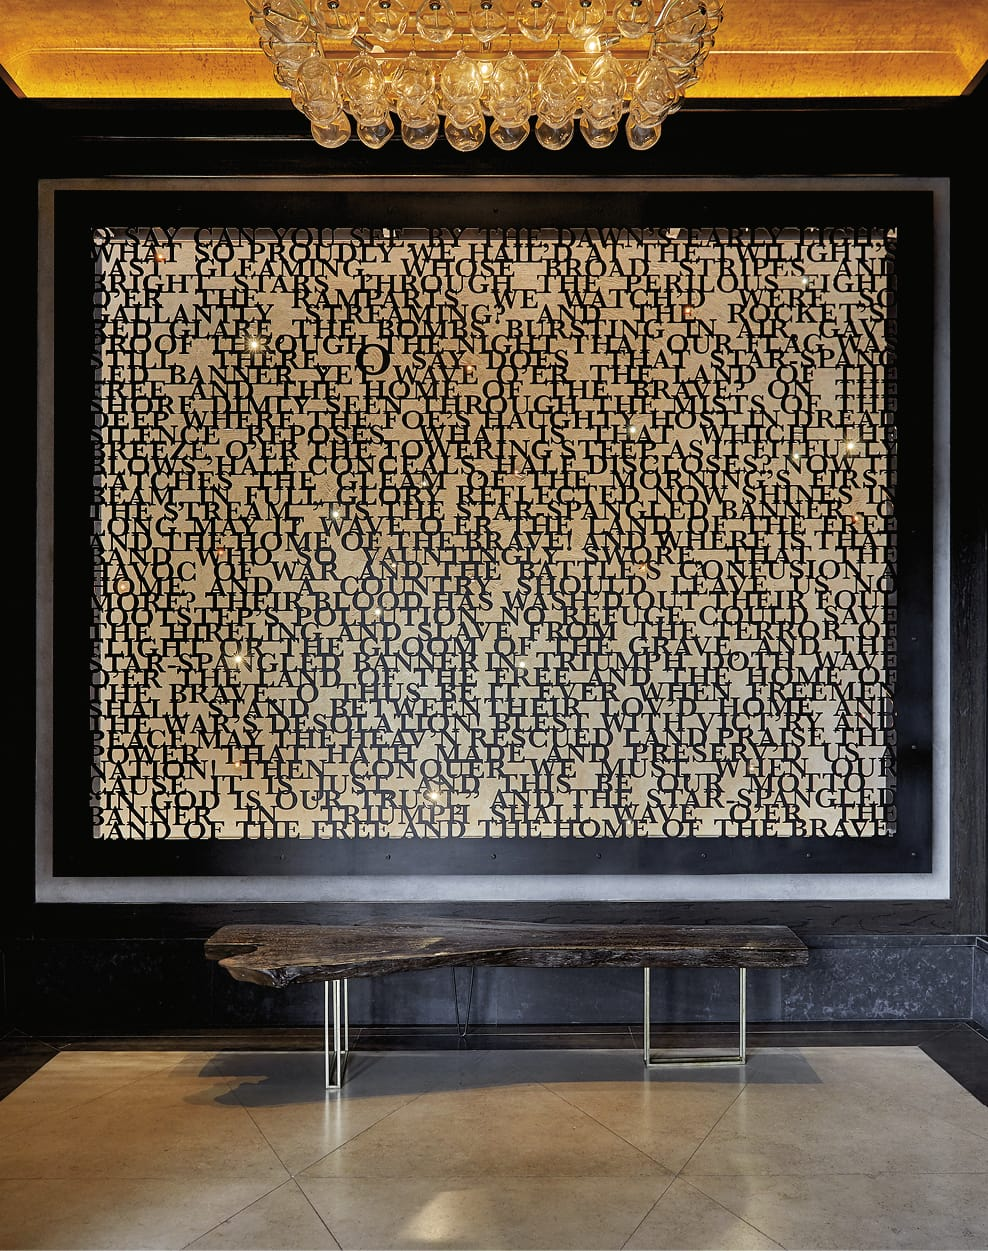 Wall art that contains the lyrics to the USA national anthem